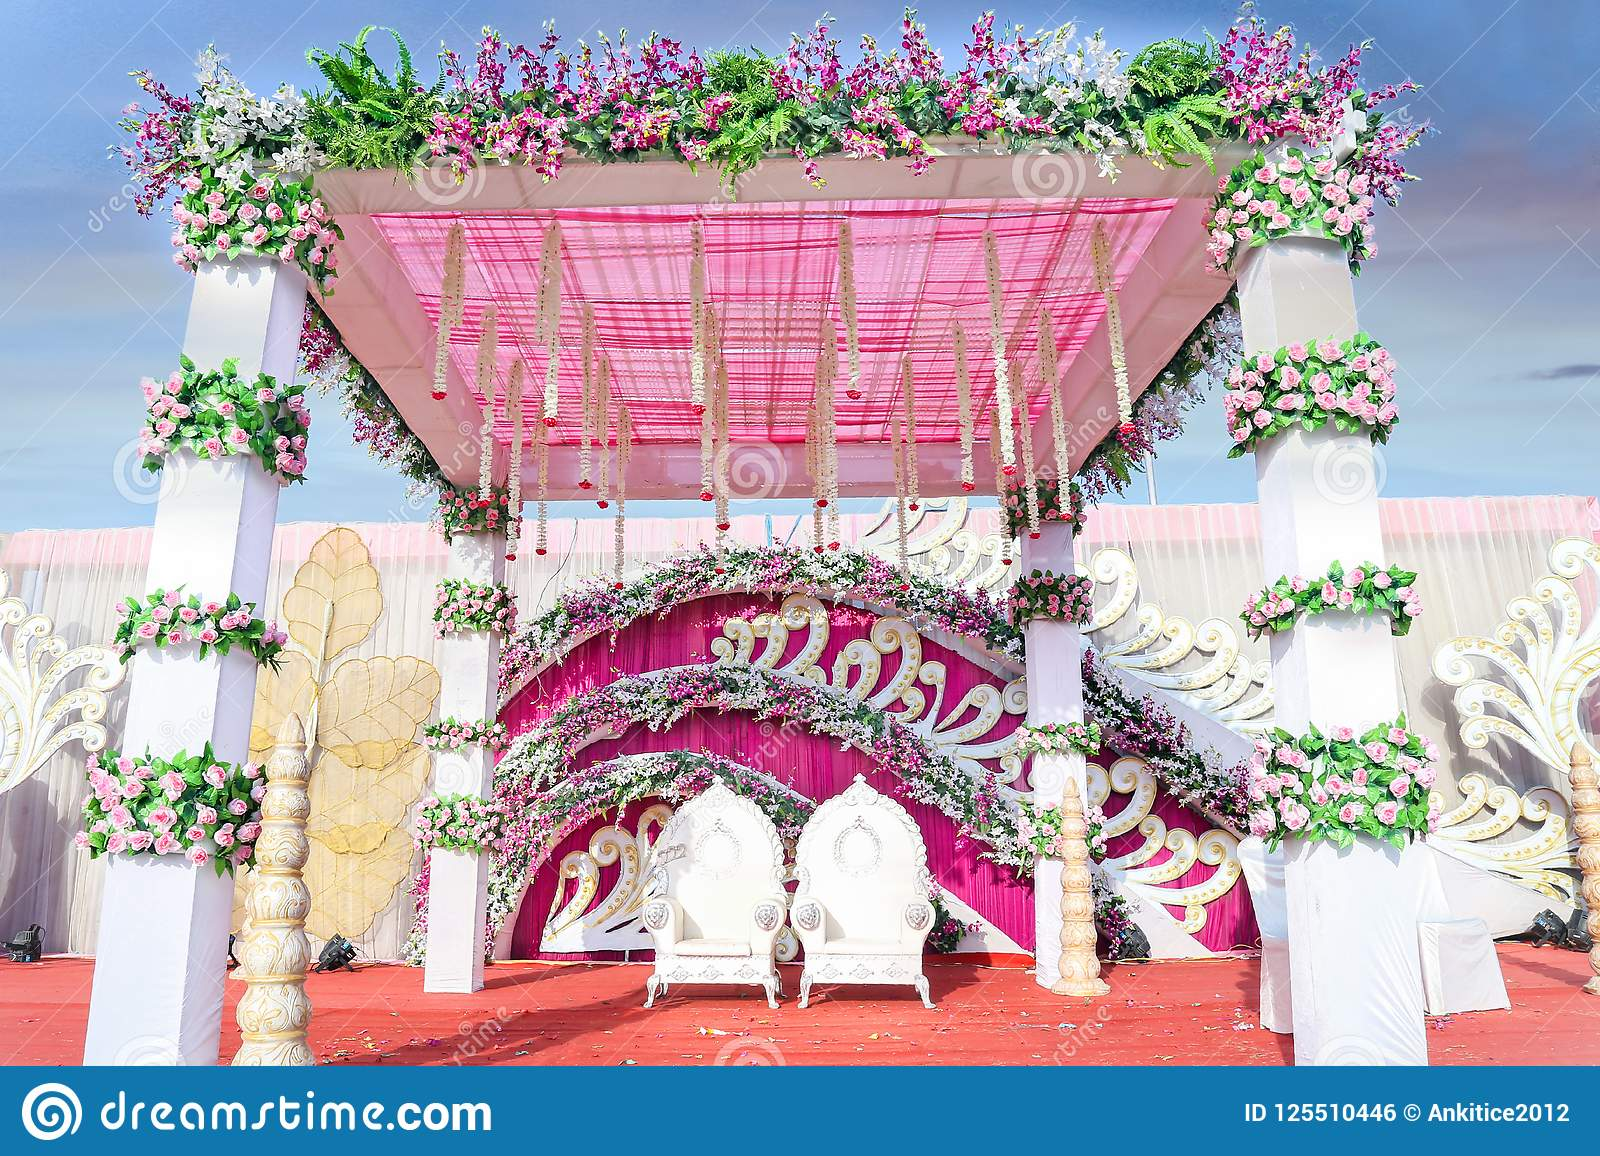 359 Mandap Photos Free Royalty Free Stock Photos From Dreamstime